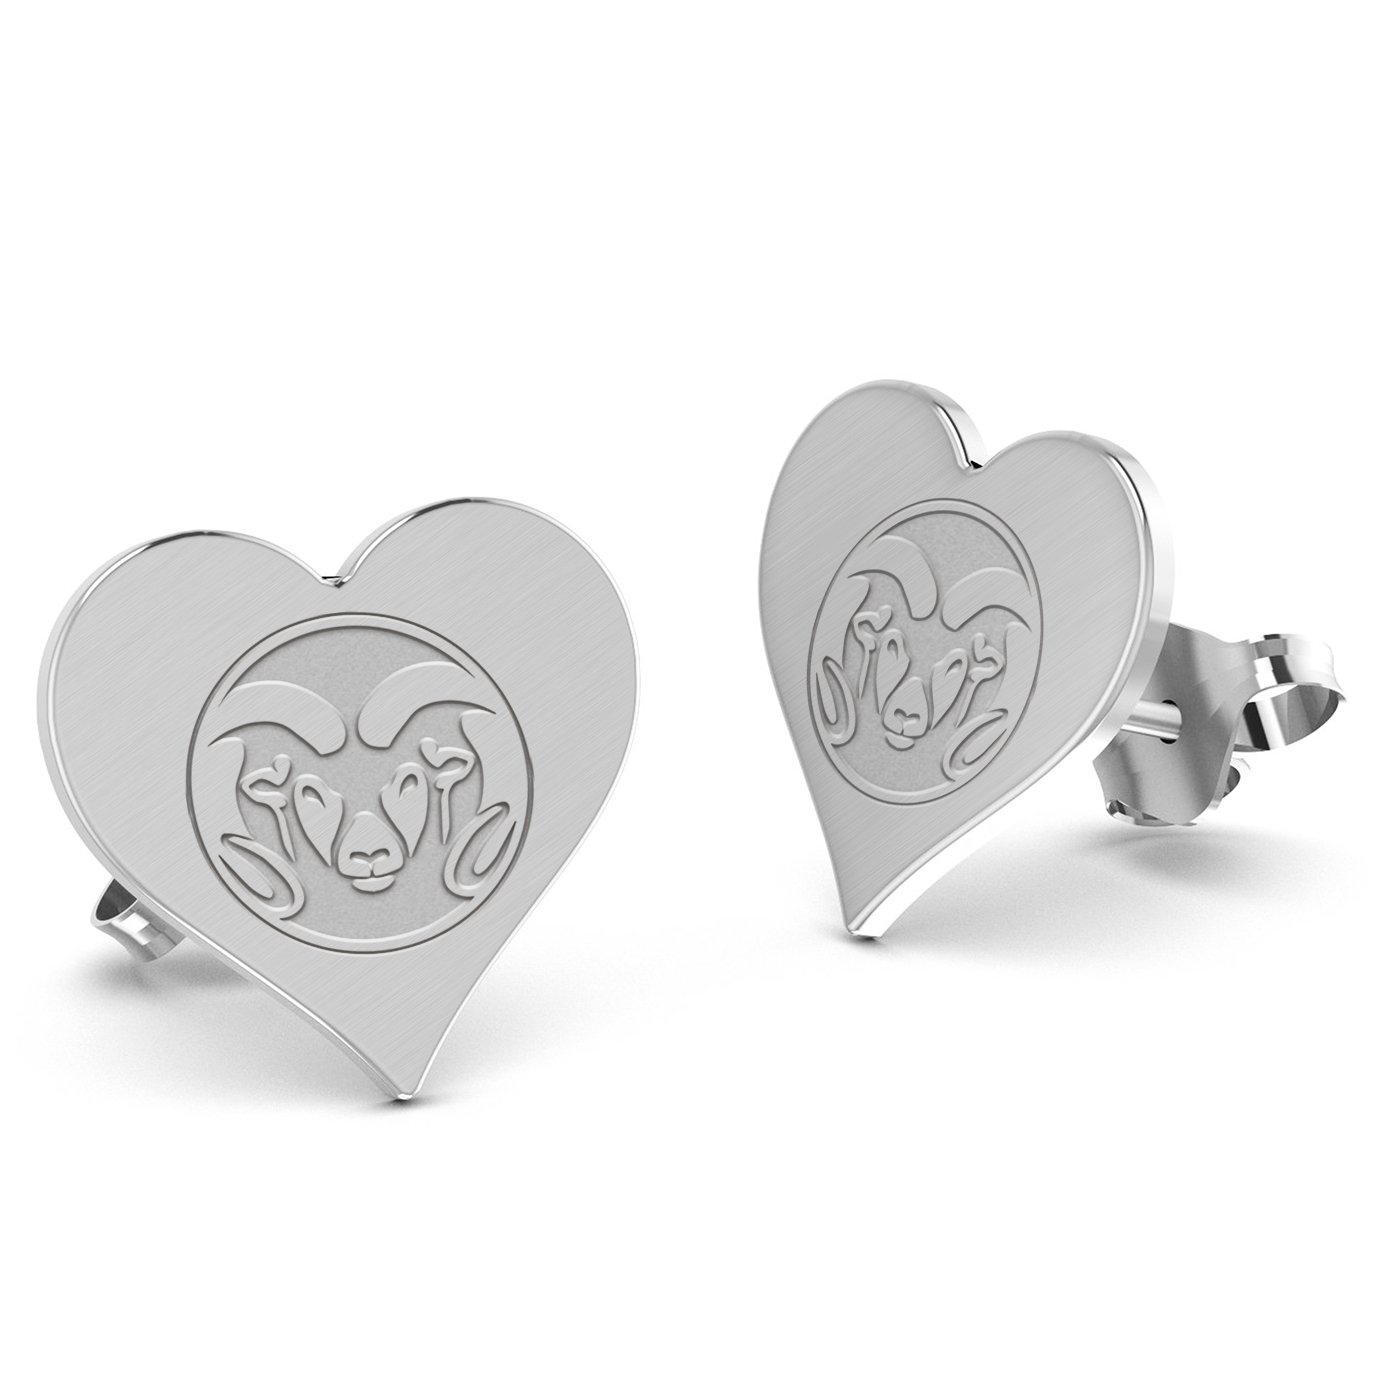 Colorado State Rams Heart Stud Earring See Image on Model for Size Reference